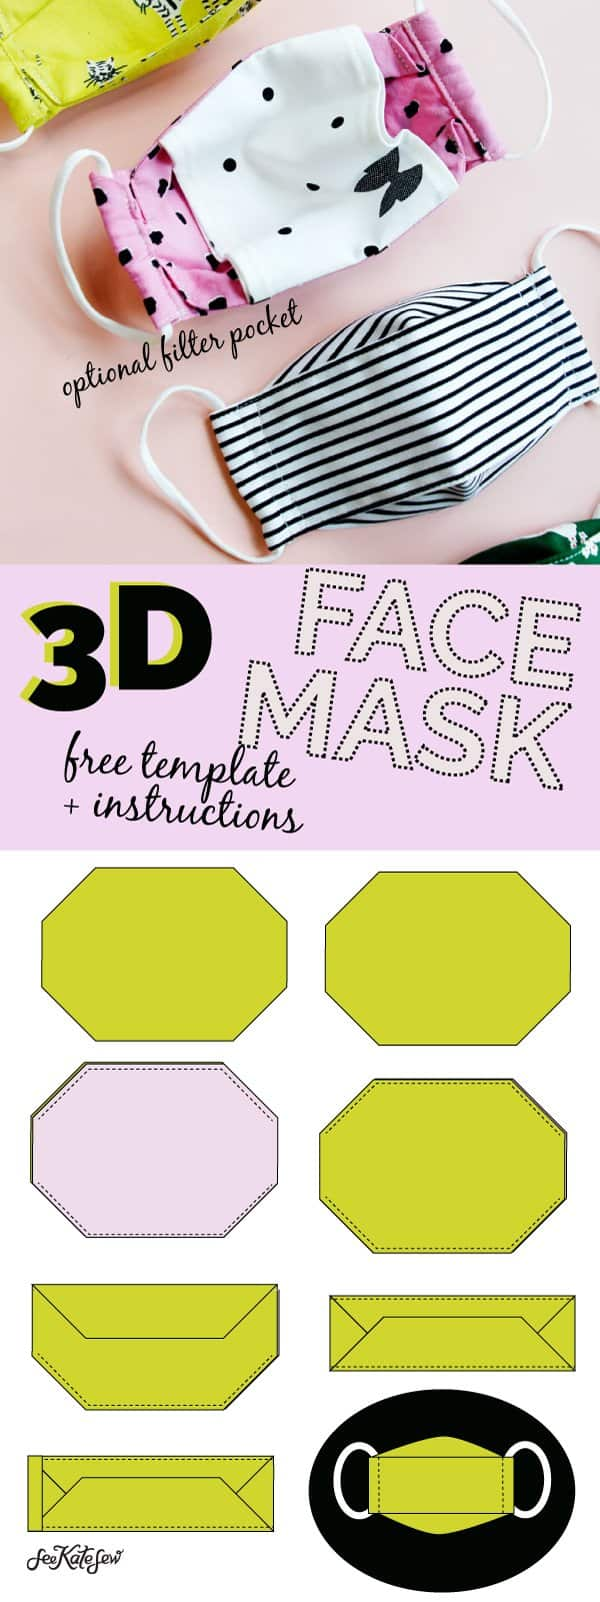 Make a 3D MASK | Mask sewing template